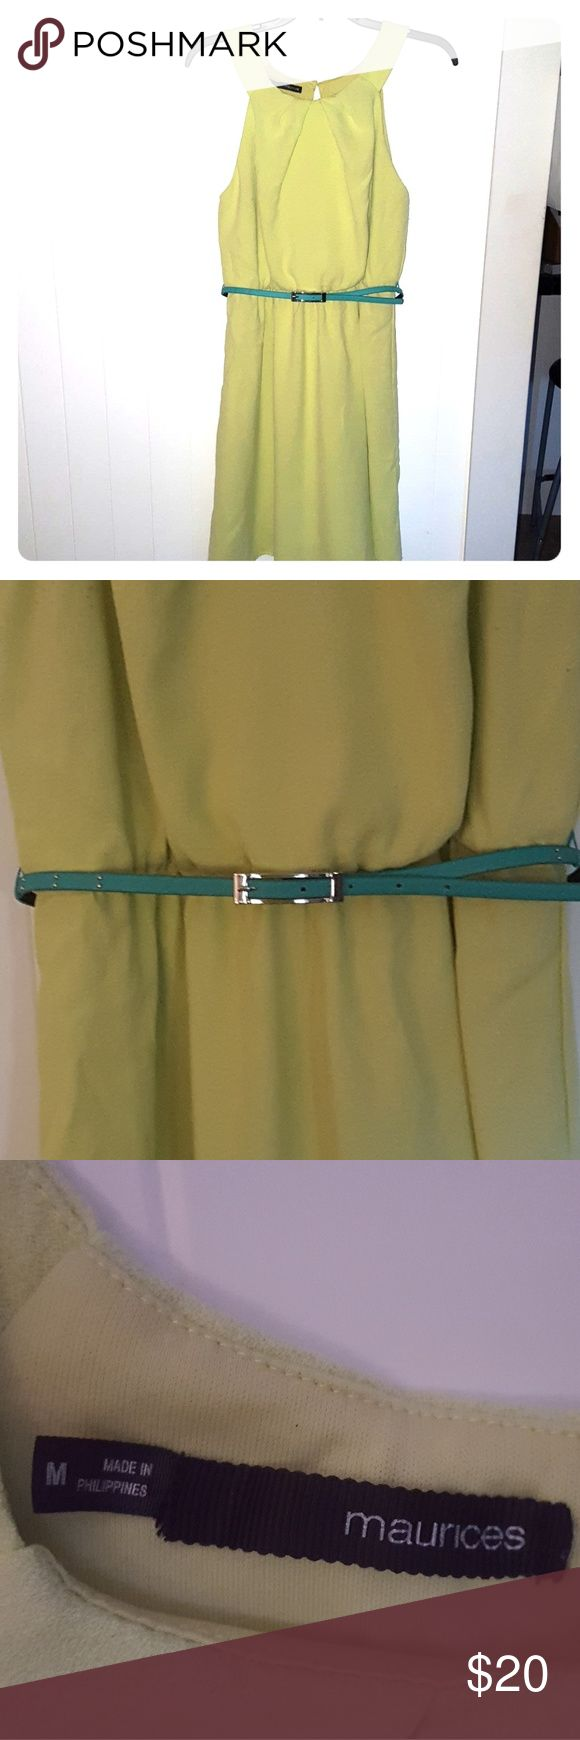 Maurices lime green dress Medium Lime green dress with teal belt.  Can be worn without the belt. Has a nice attached lime liner :-) Maurices Dresses Midi